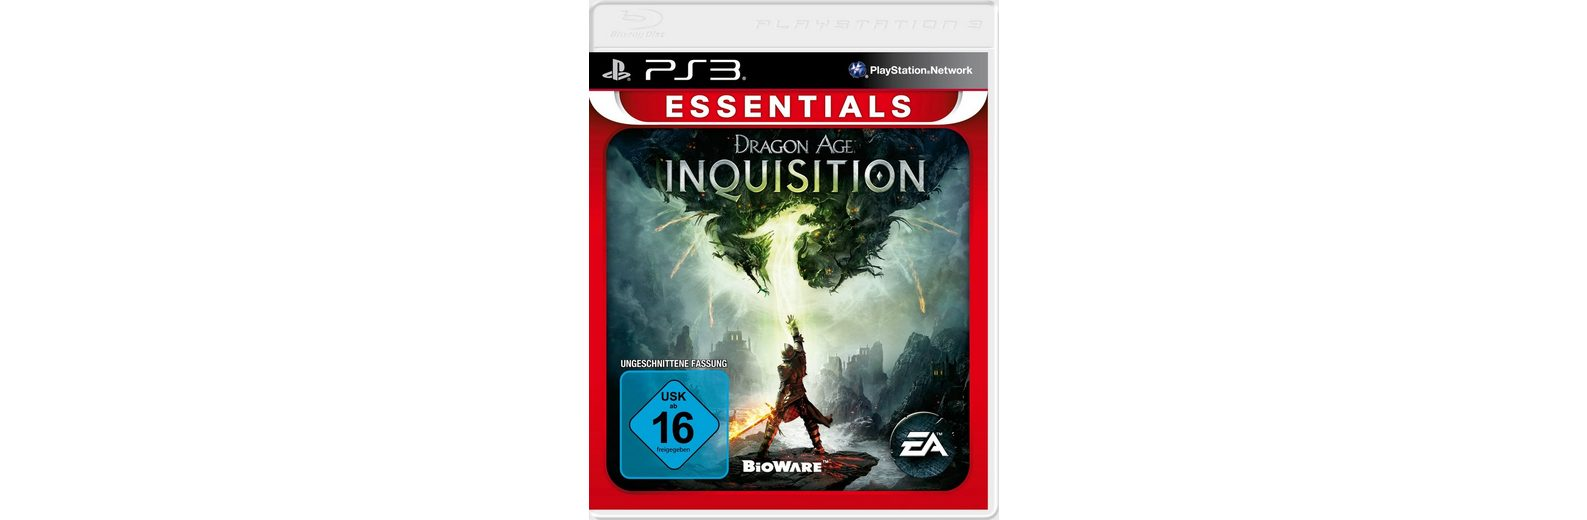 Electronic Arts Software Pyramide - Playstation 3 Spiel »Dragon Age: Inquisition«